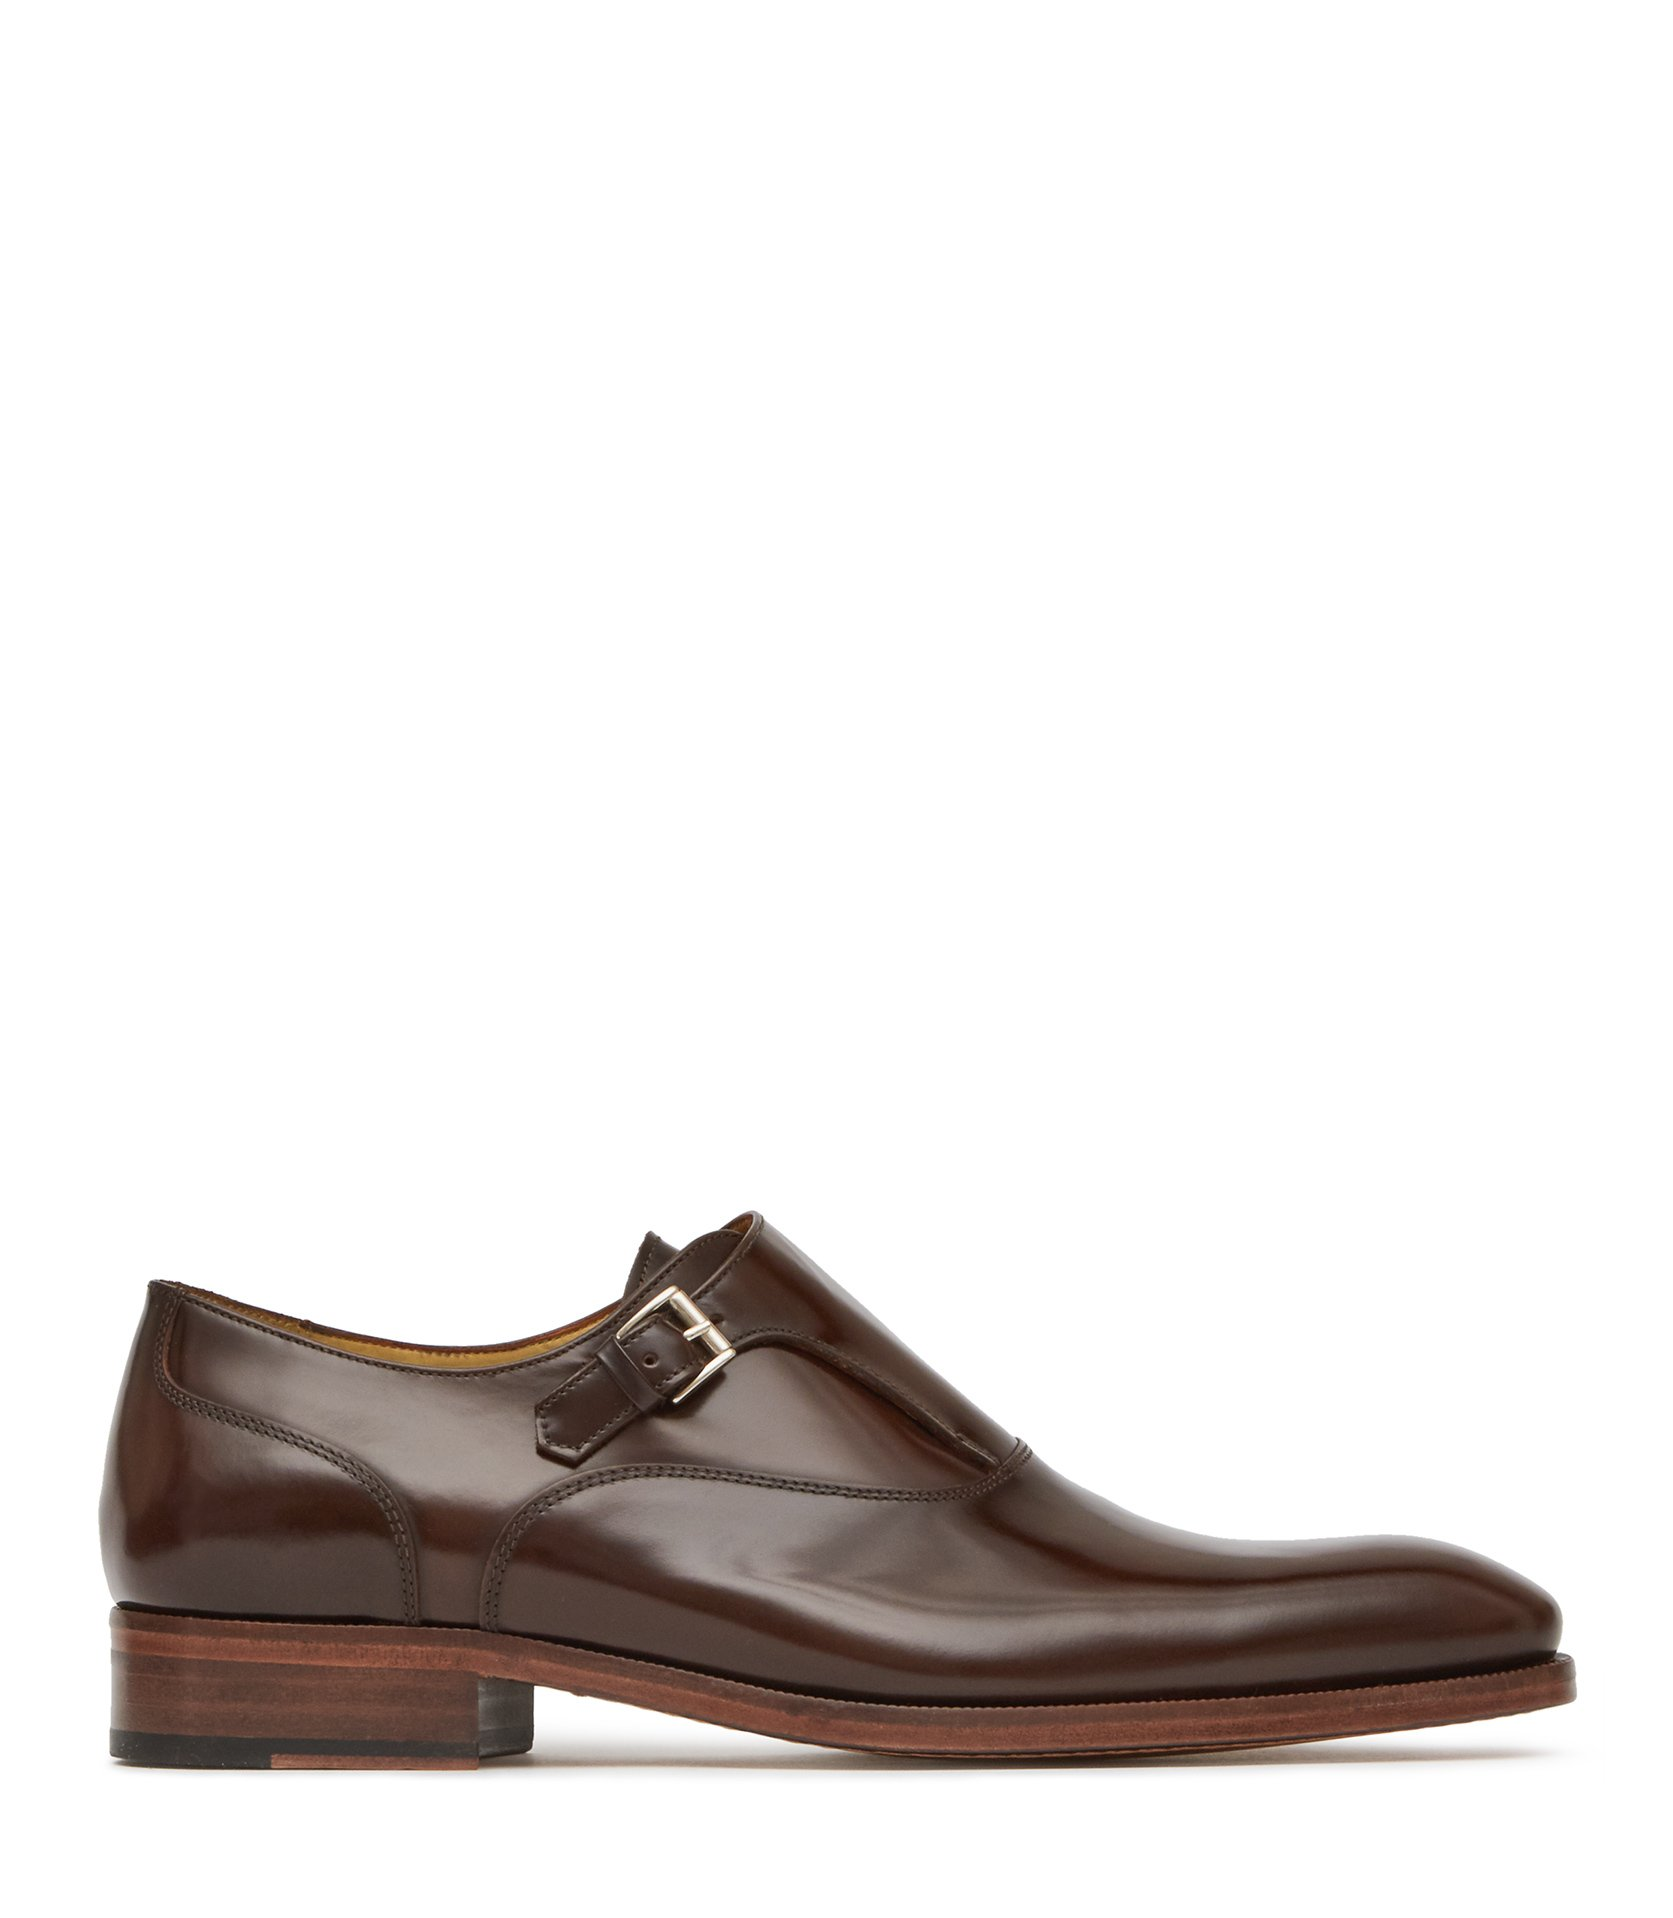 Reiss Brown Calwer Monk Strap Shoes